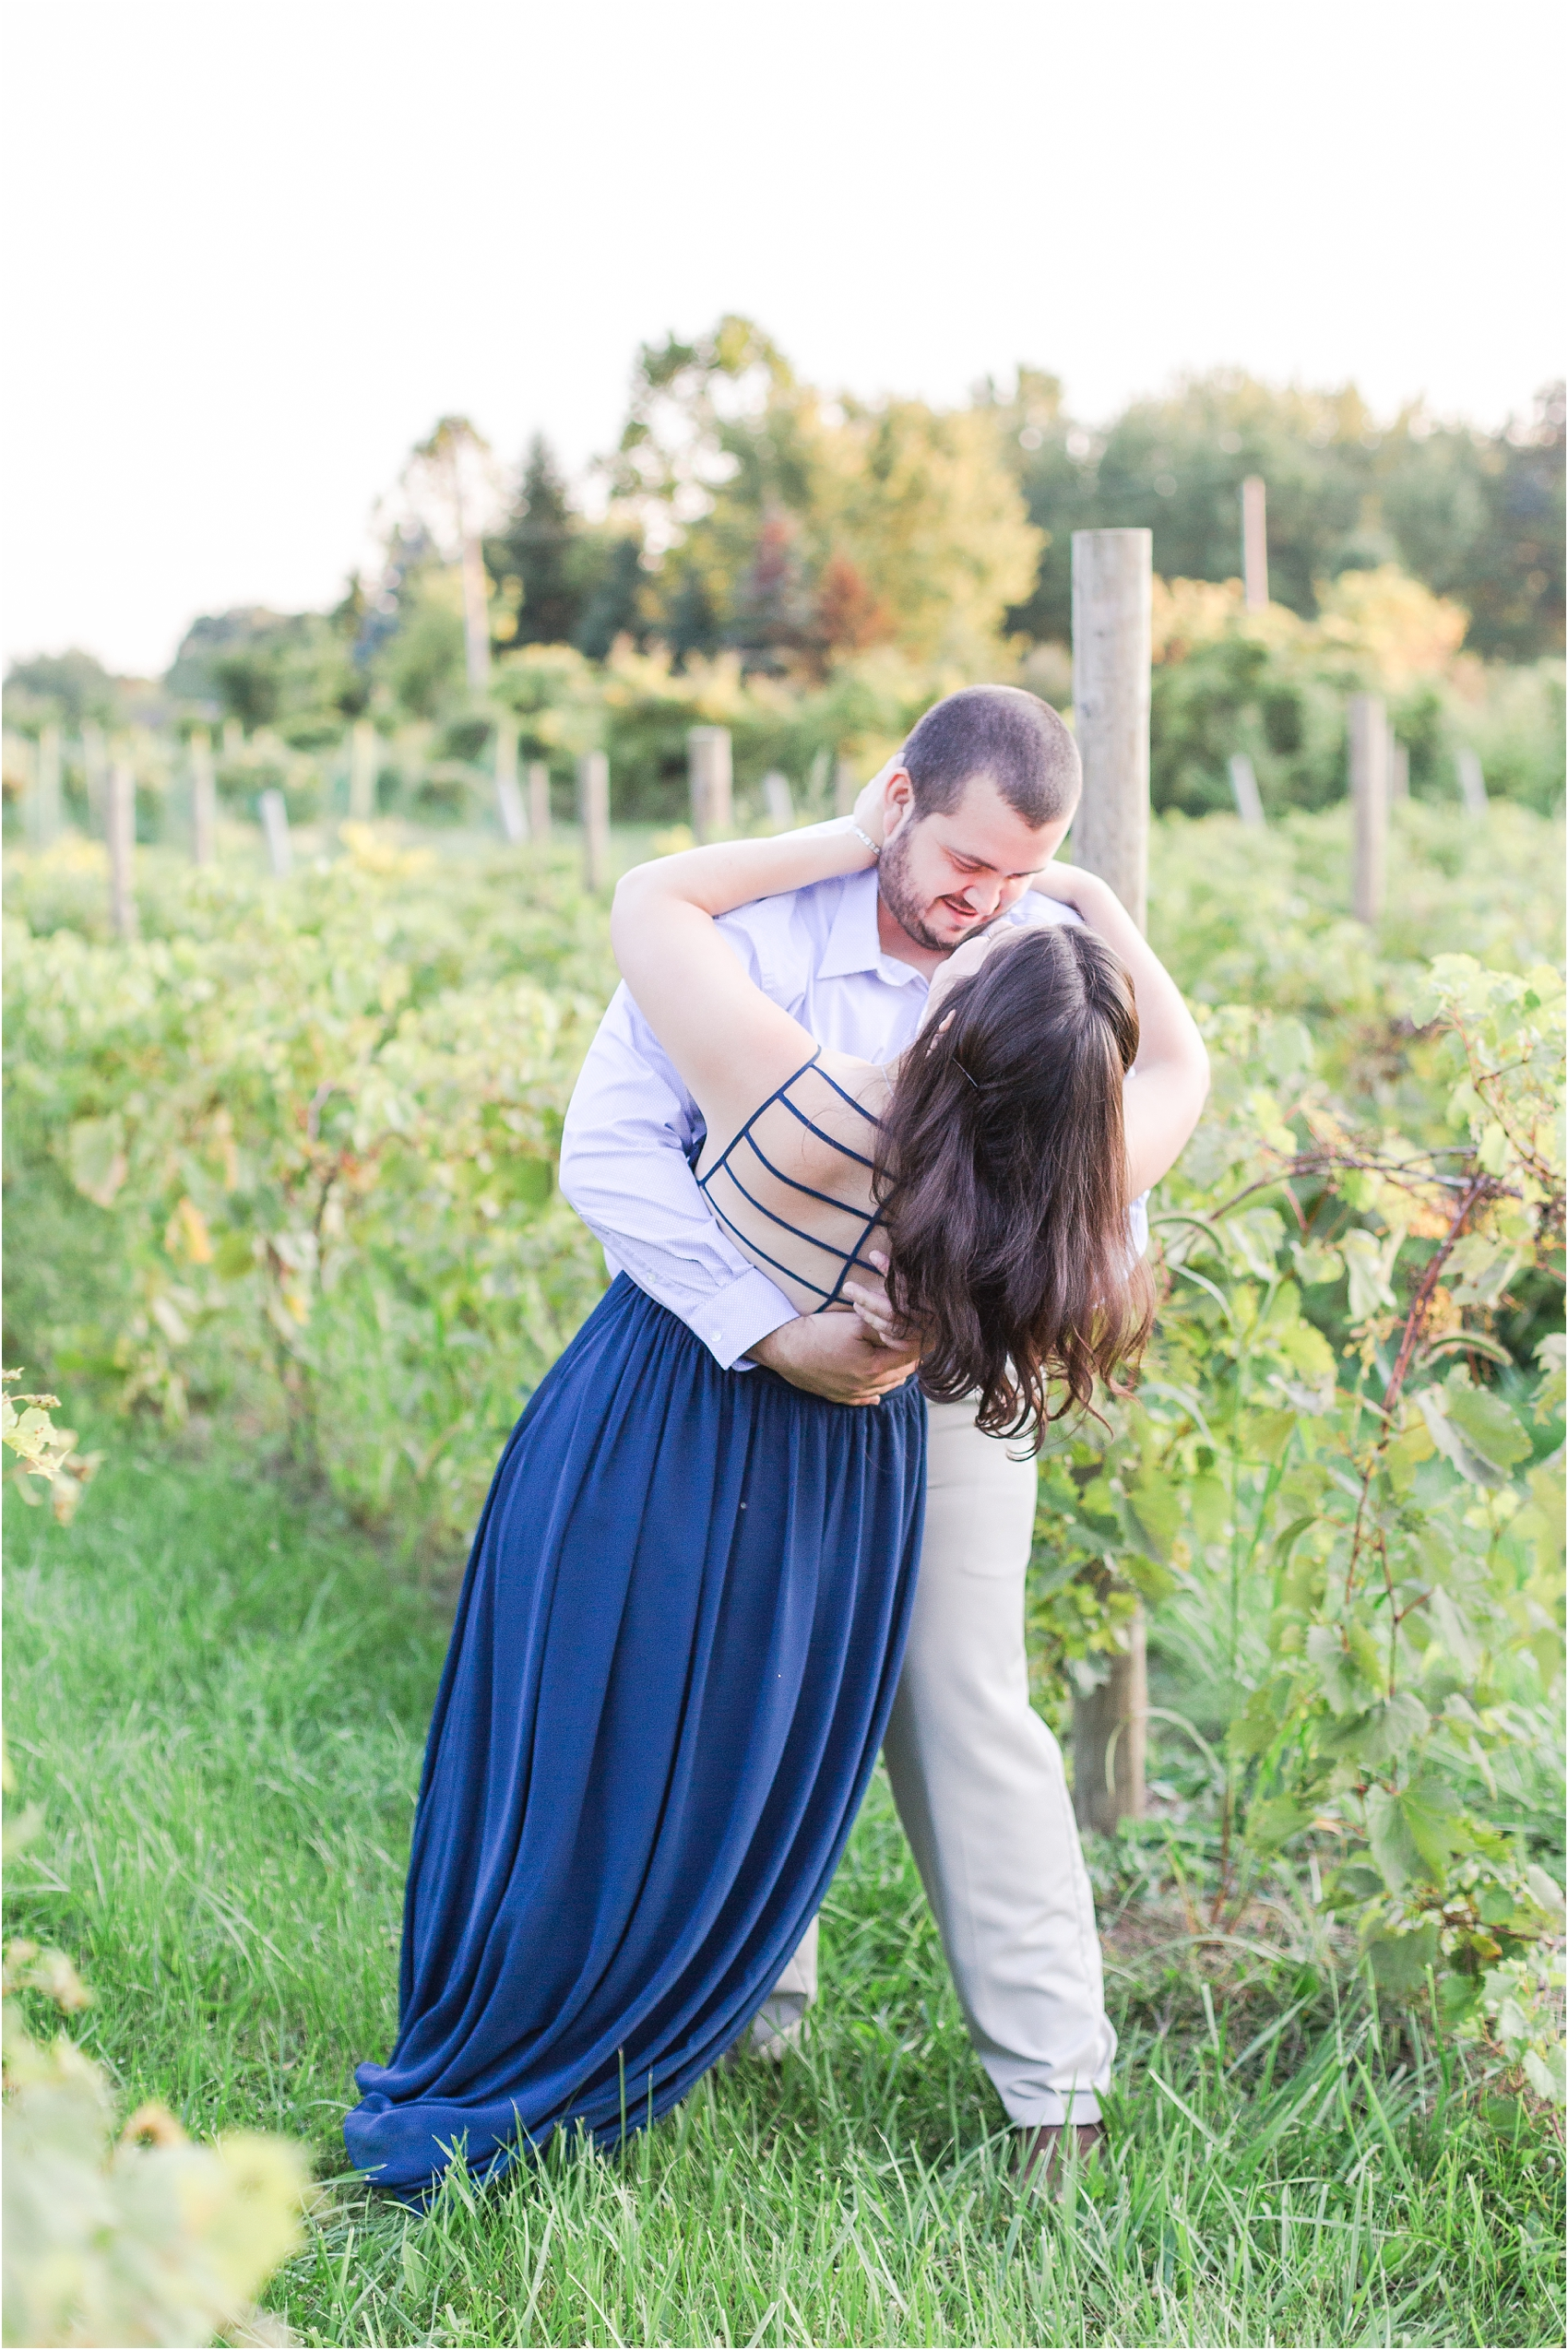 candid-romantic-summer-engagement-photos-at-hidden-lake-gardens-and-black-fire-winery-in-tipton-mi-by-courtney-carolyn-photography_0009.jpg